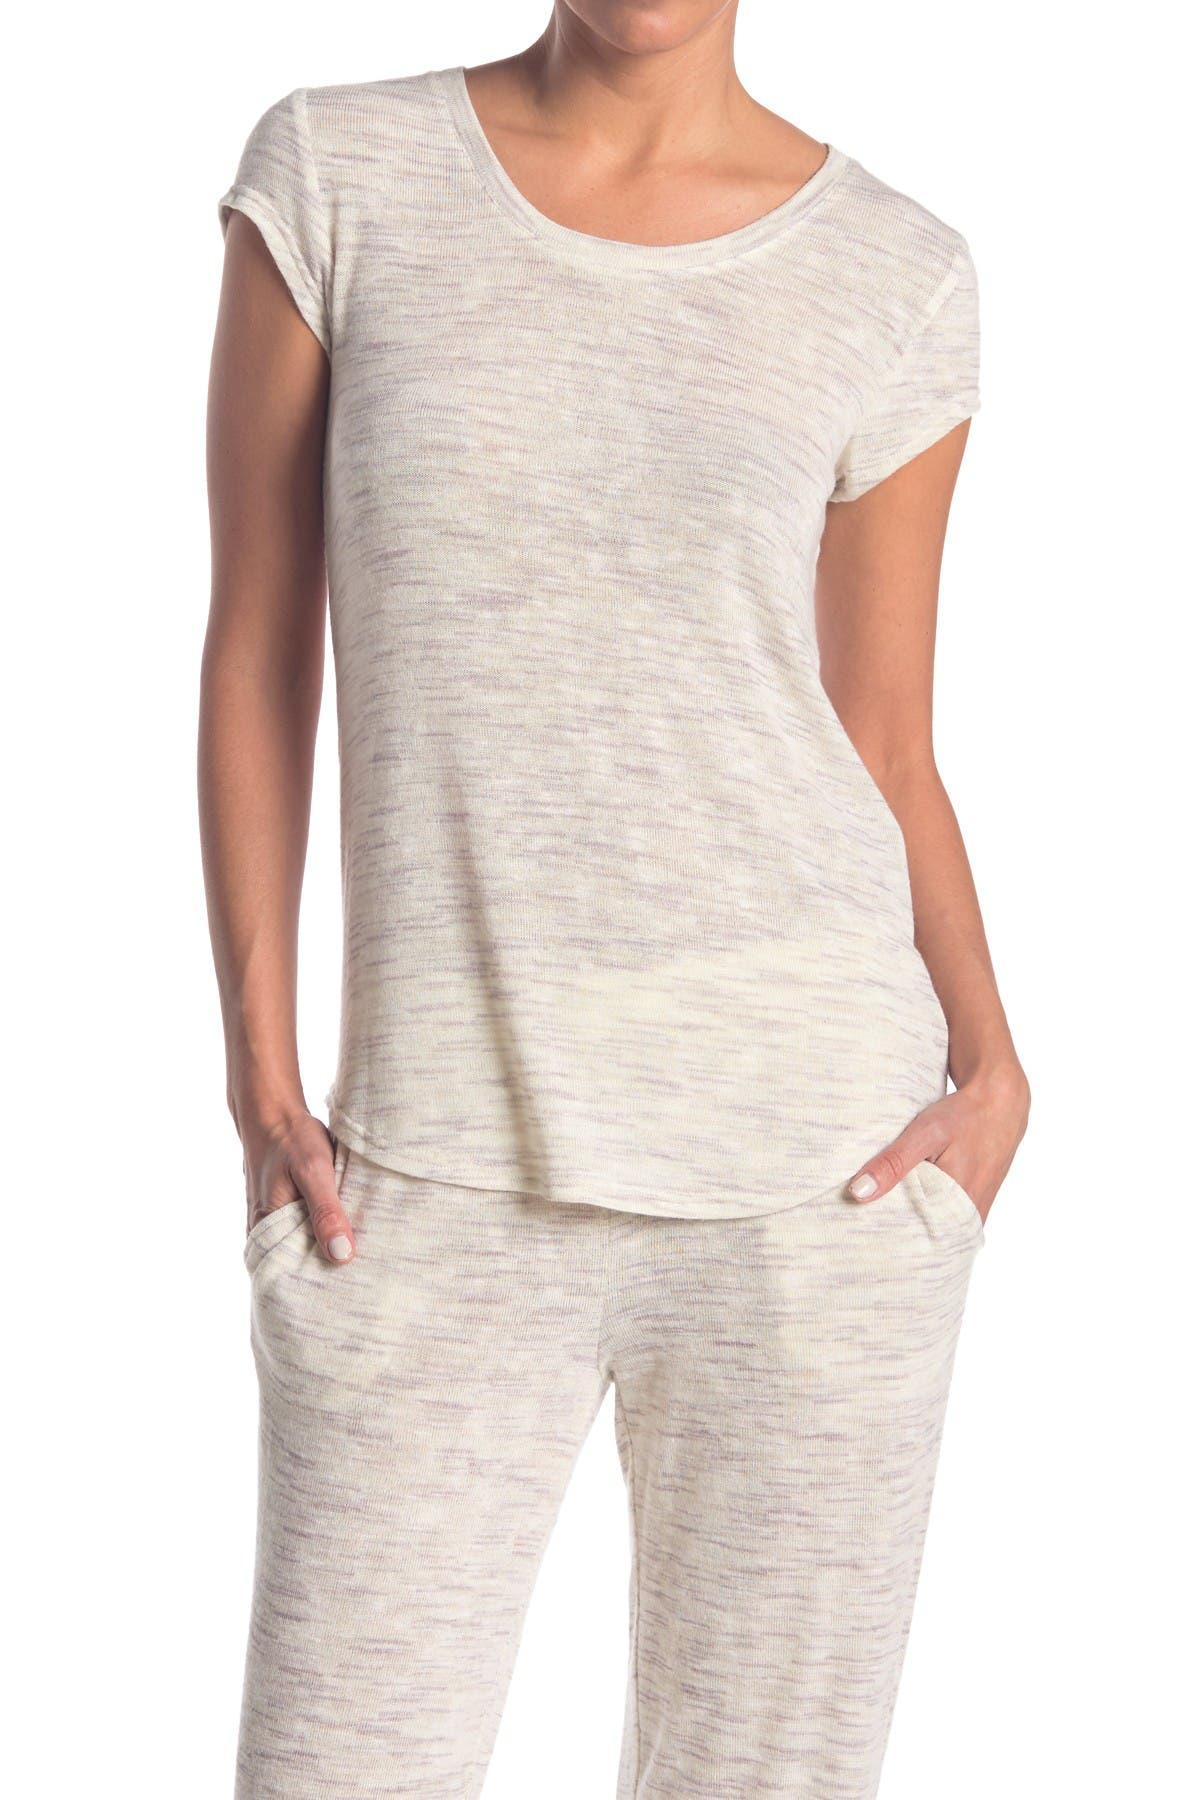 Image of HUE Space Dye Print Scoop Neck Pajama T-Shirt